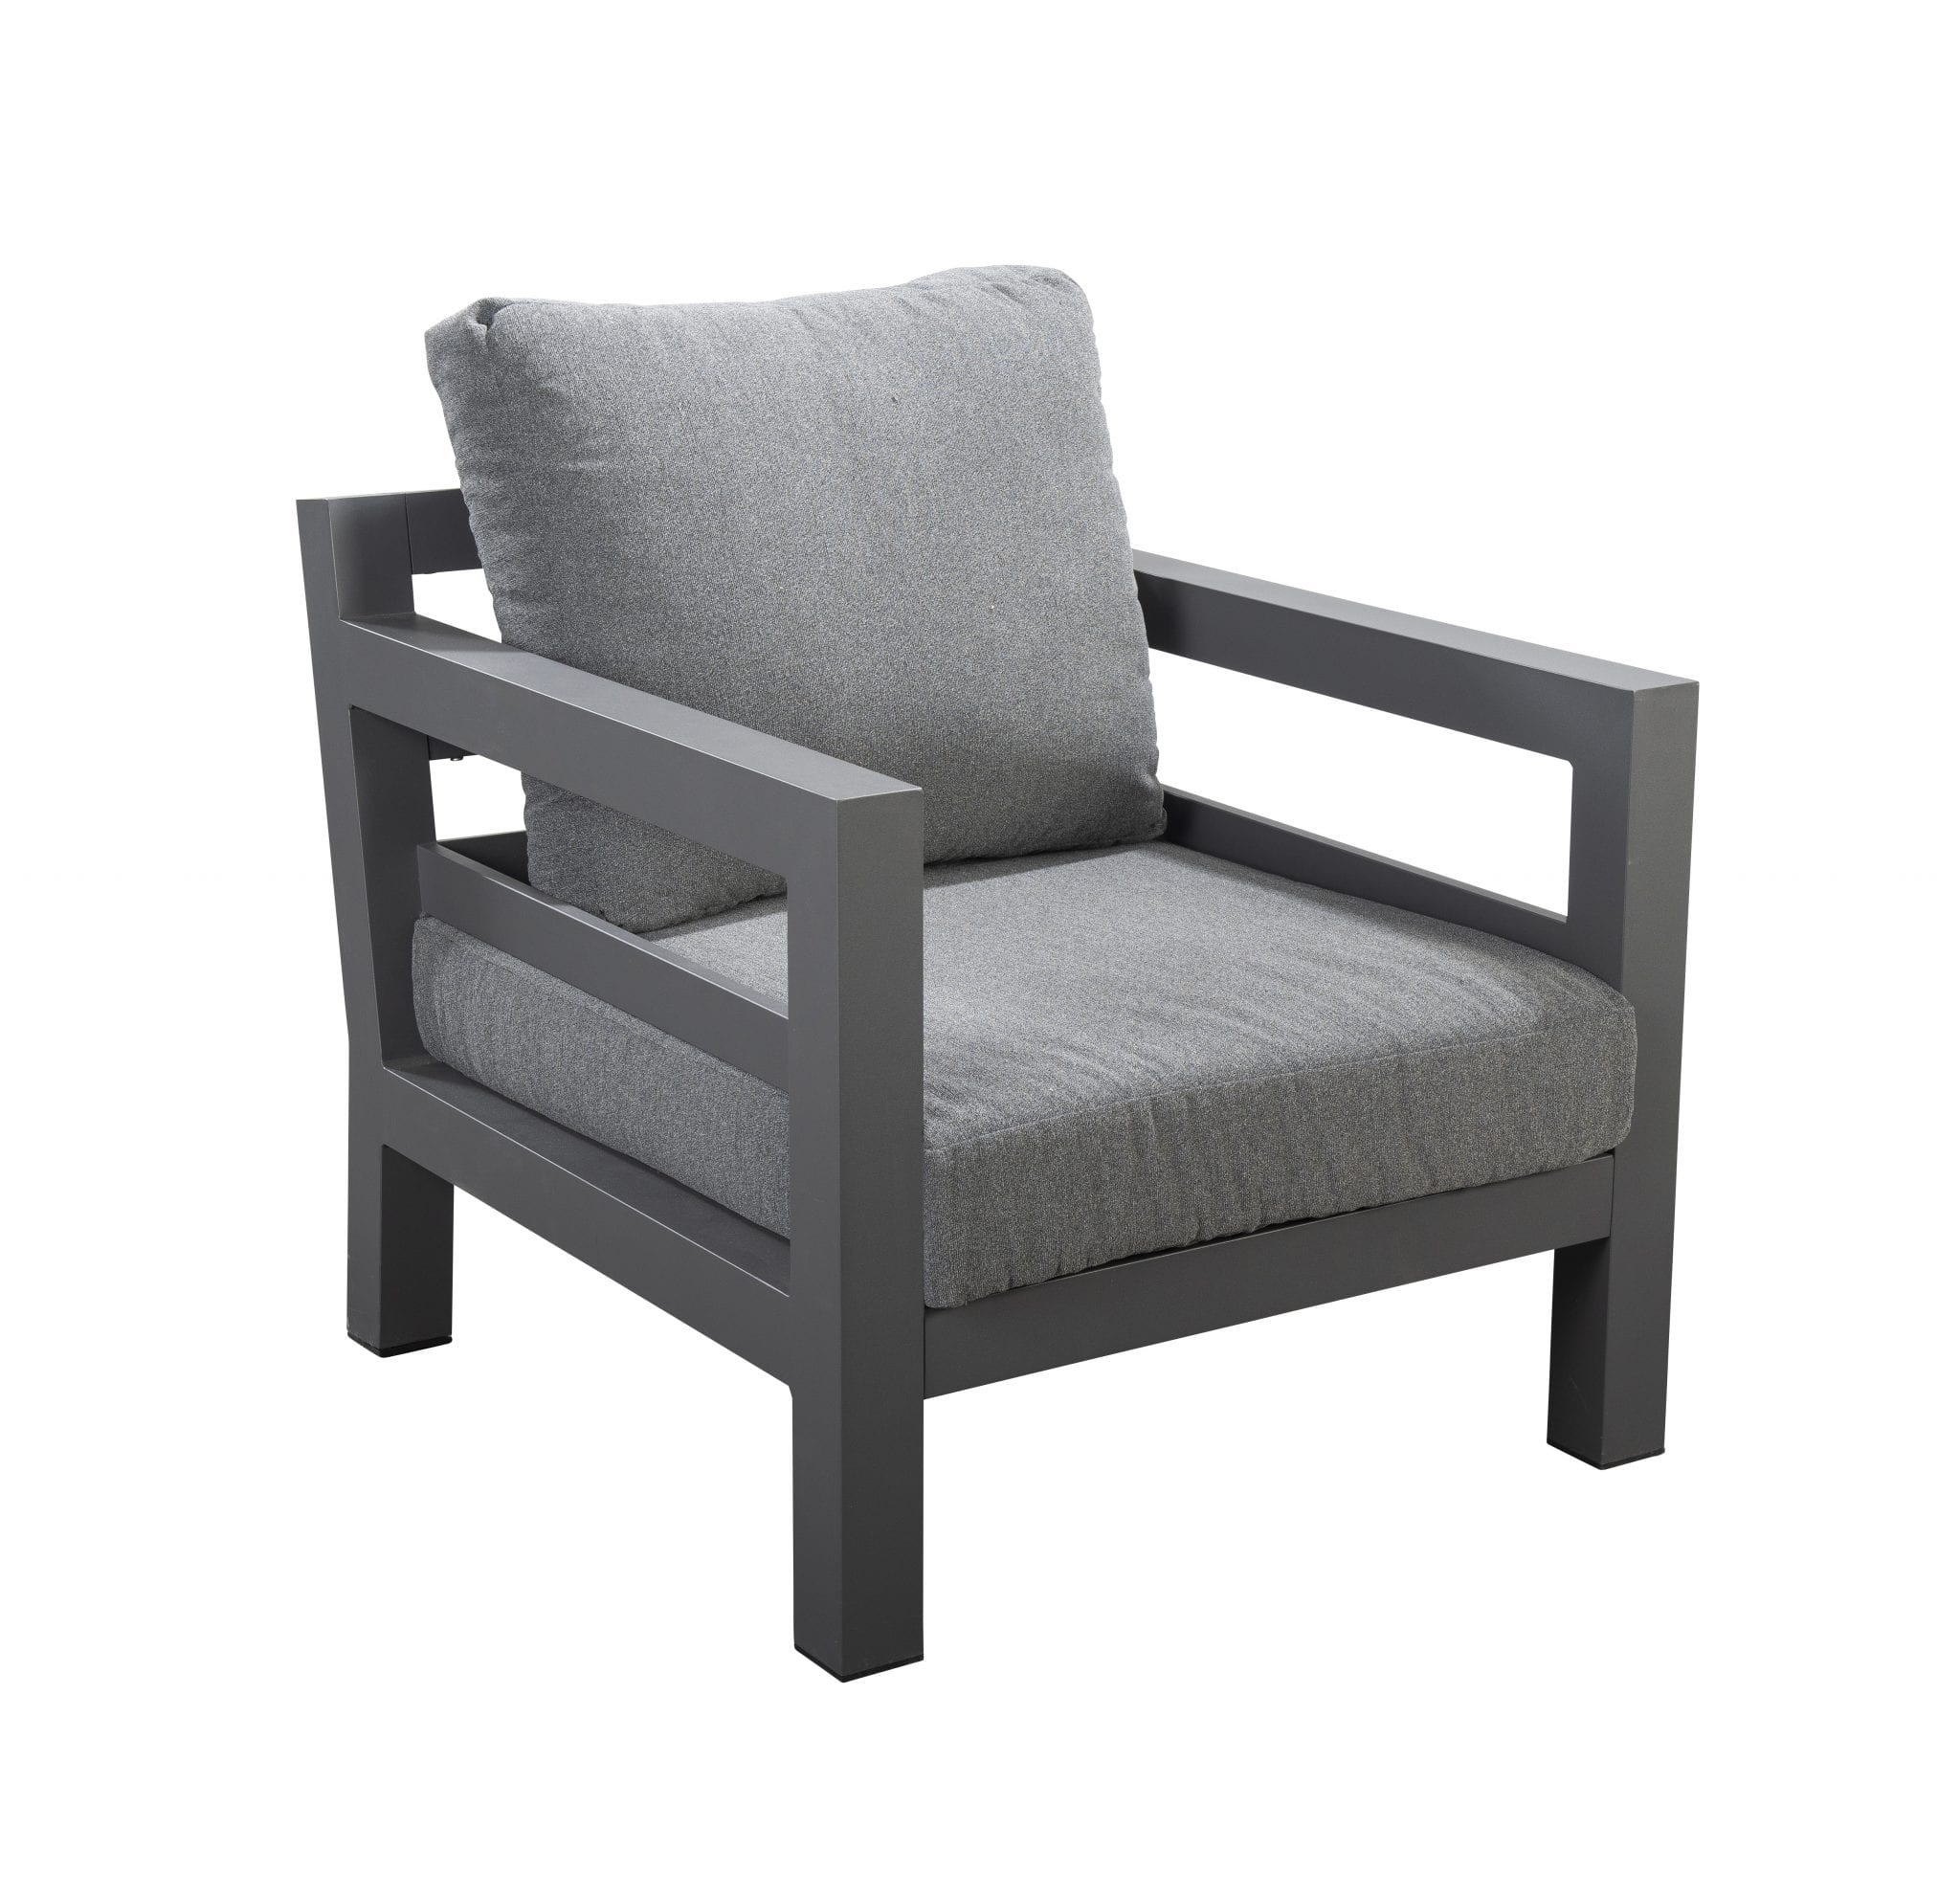 Midori lounge chair - dark grey | Yoi Furniture